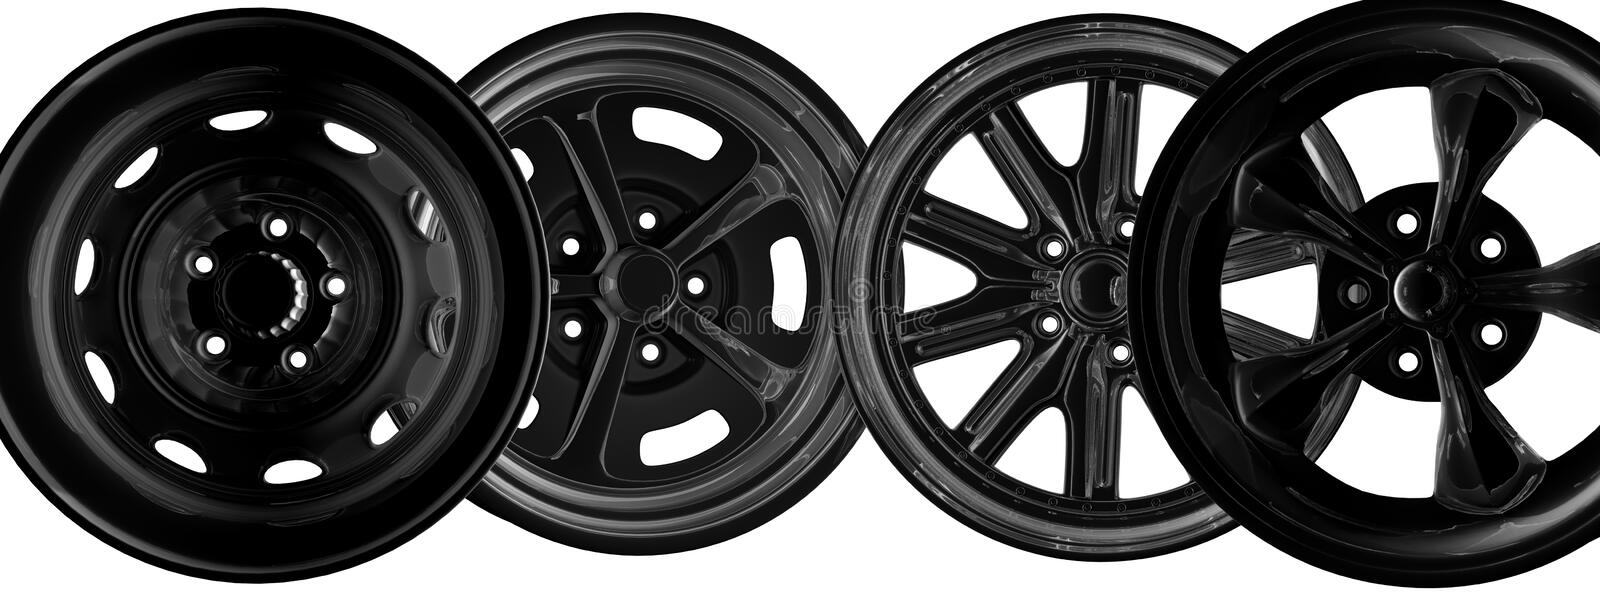 Car rims. Steel car rims over the white background vector illustration